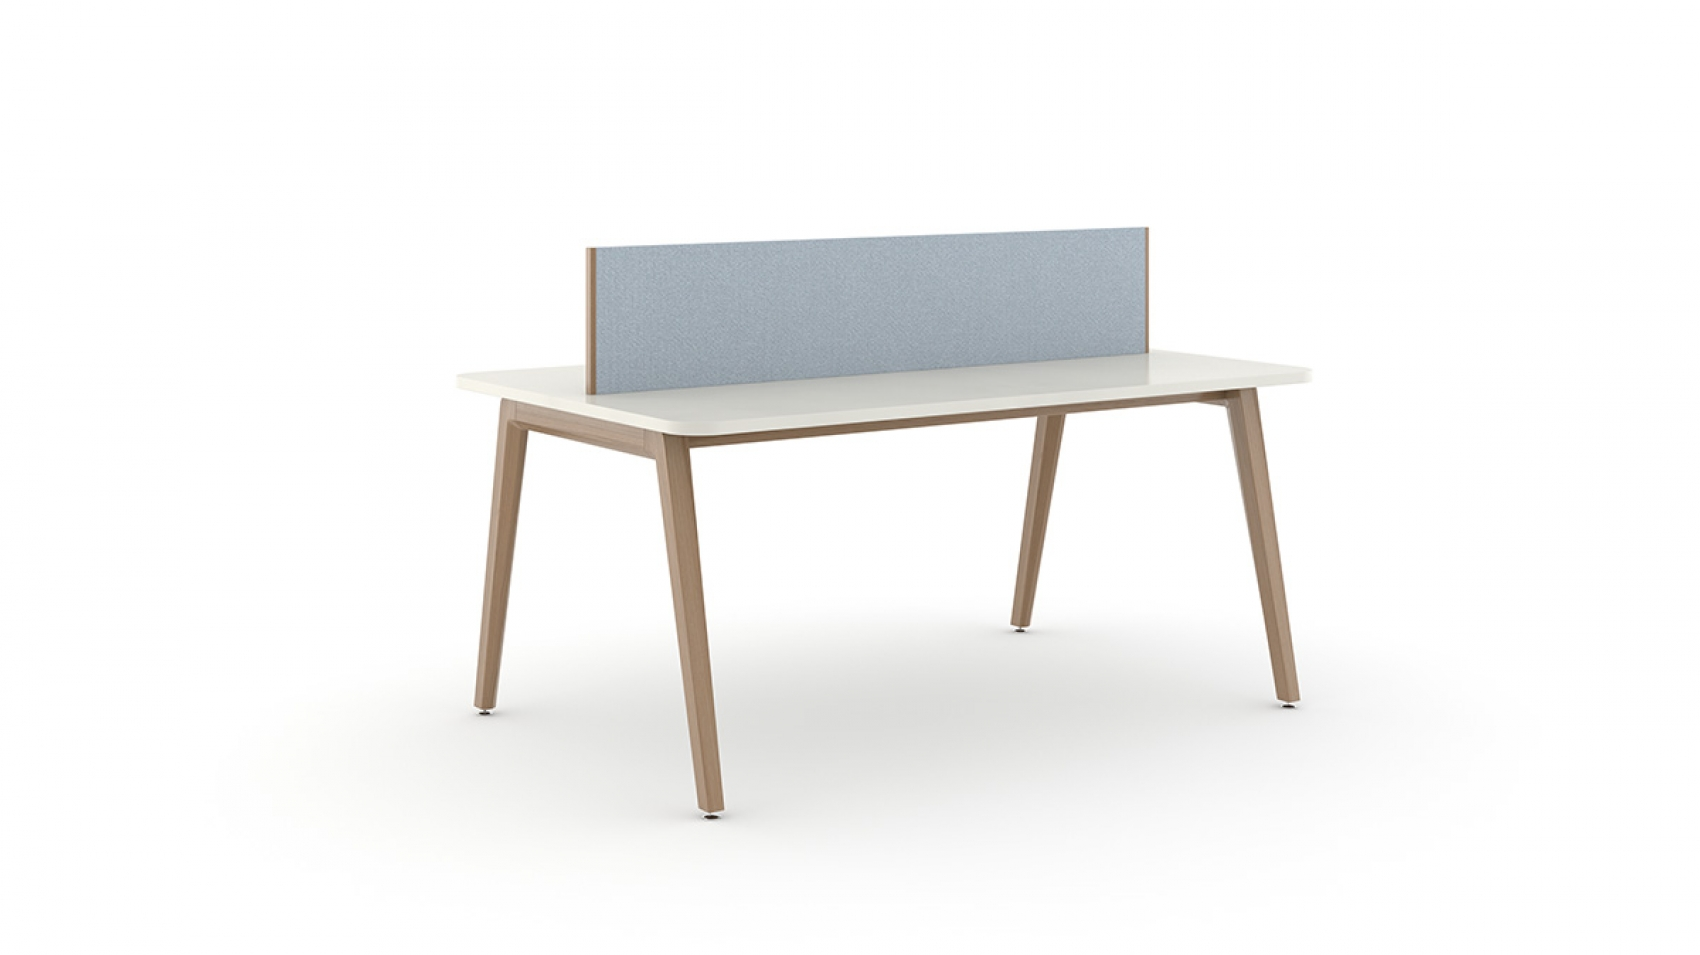 Eleven Wood embodies  Architecture Uninterrupted  with elegant simplicity  and warmth from crafted wood elements  The solid ash wood legs are an  extension to. Eleven Wood   OFS